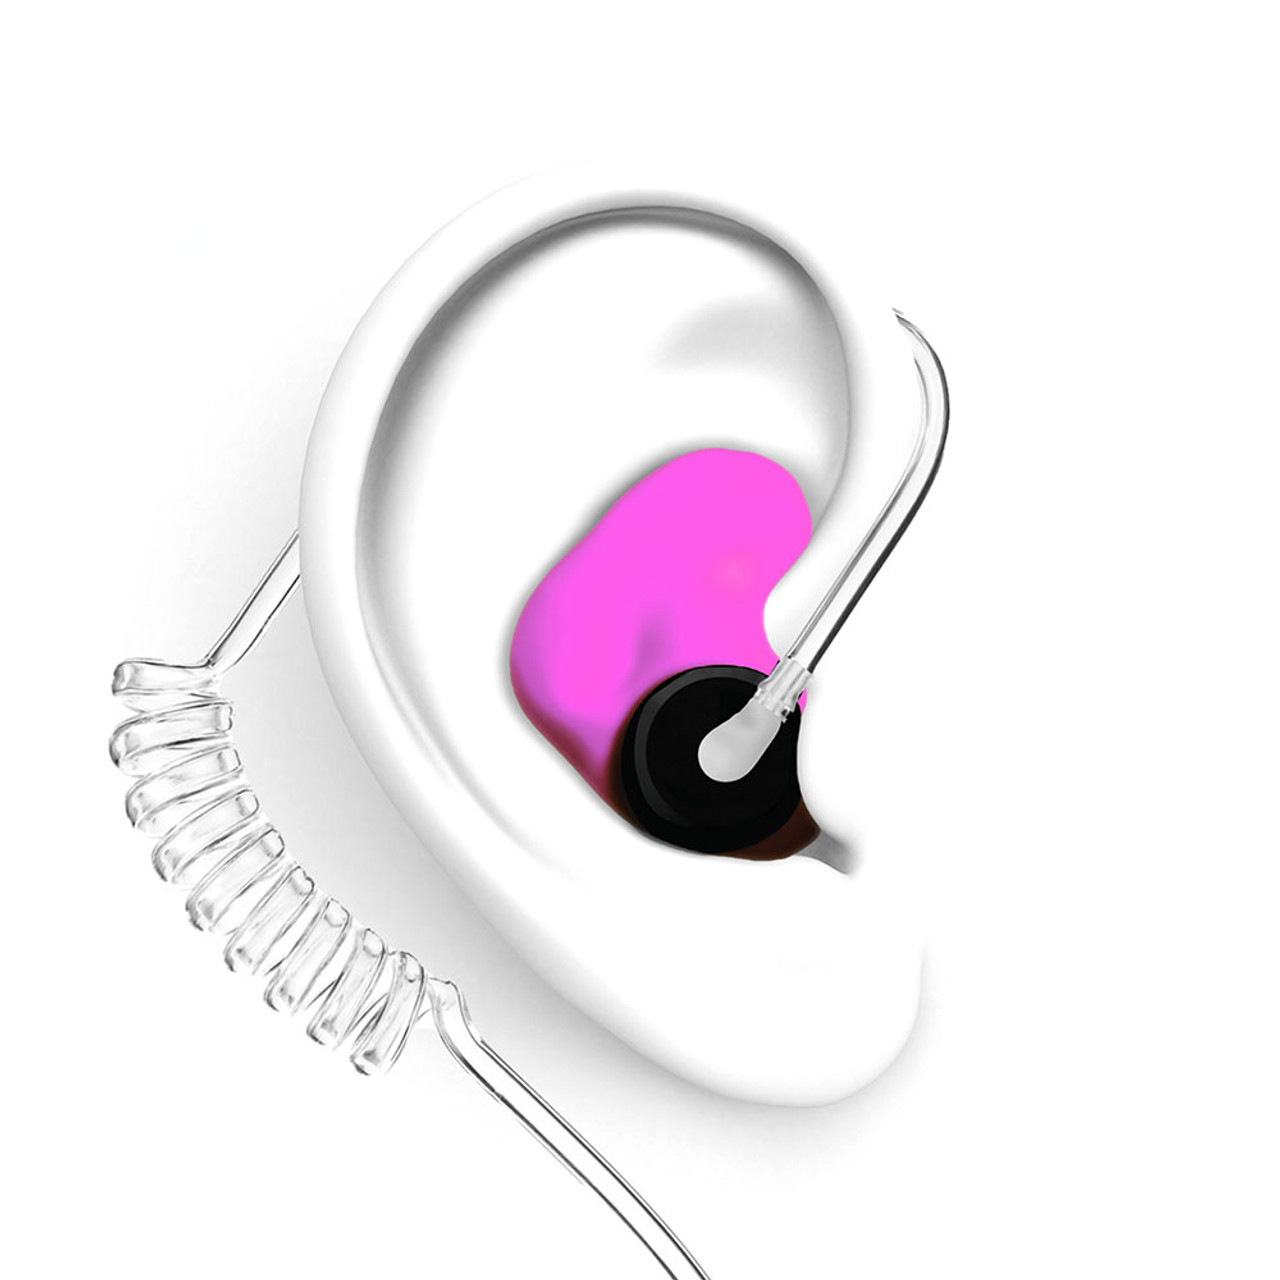 DECIBULLZ Pink Custom Earplug for Two Way Radio Headsets